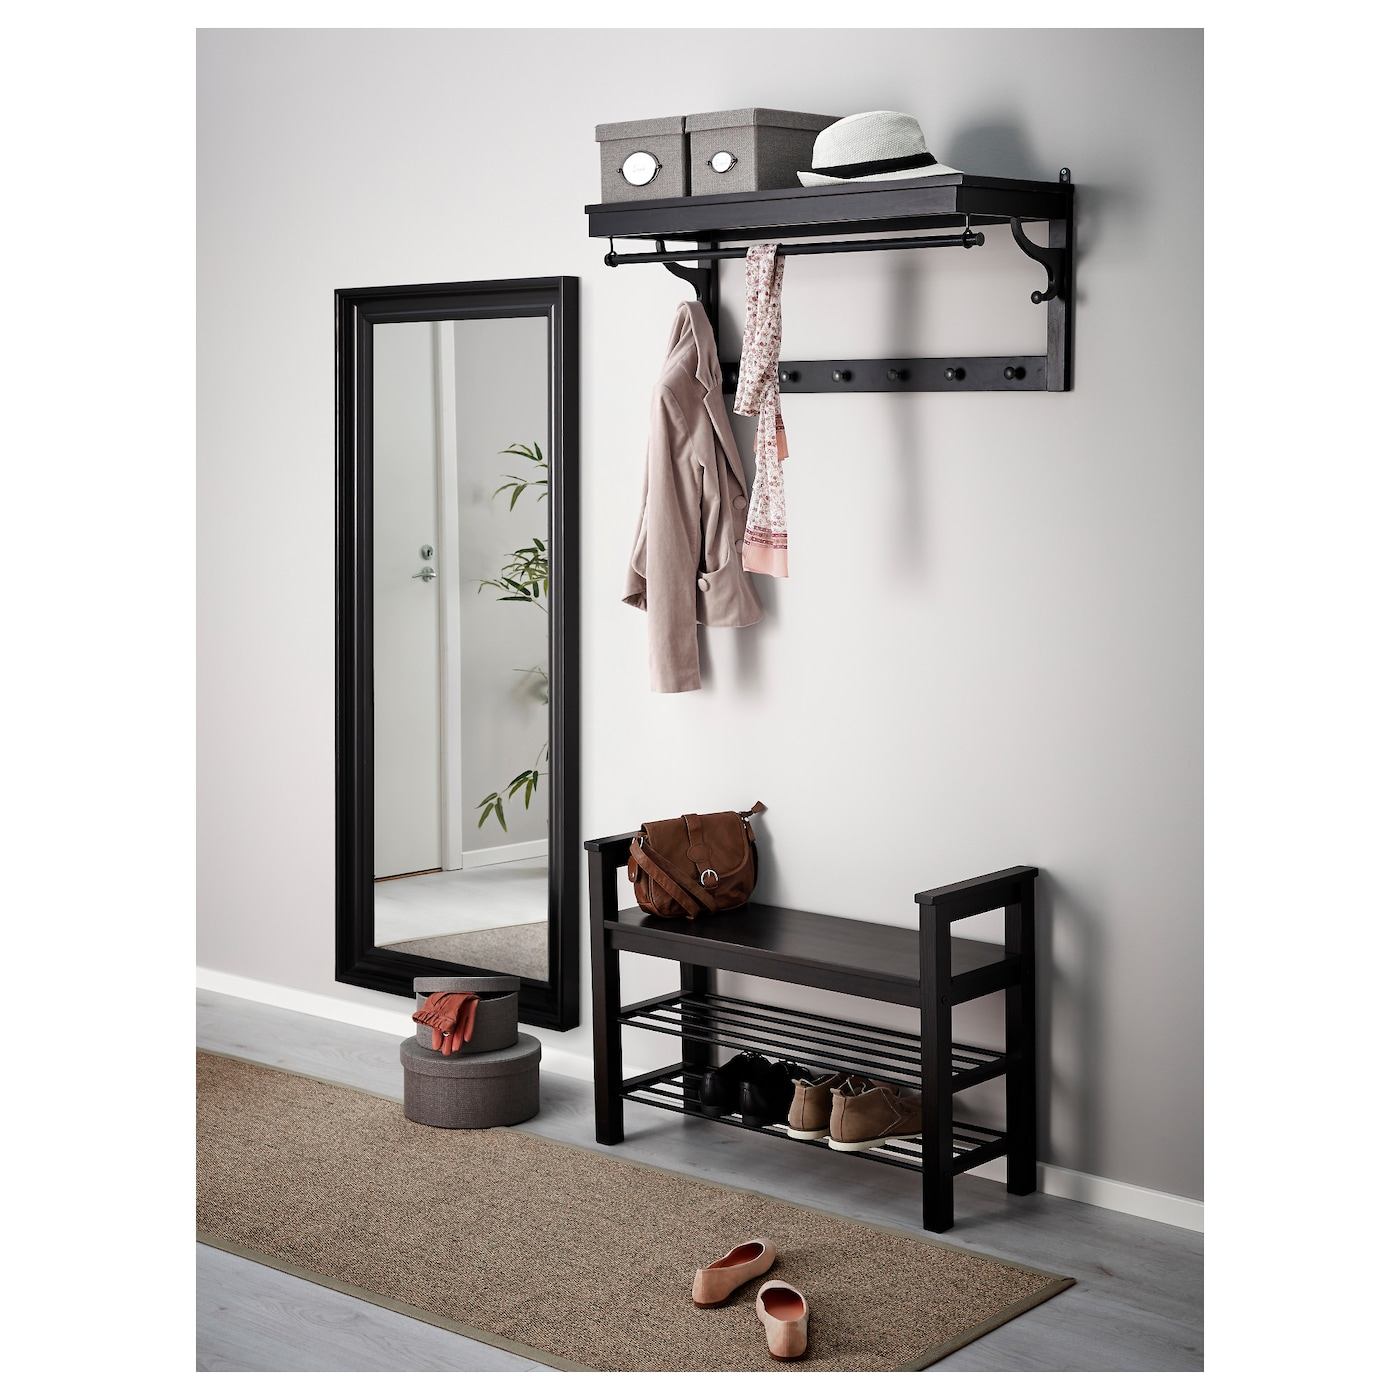 Ikea Hemnes Bench With Shoe Storage